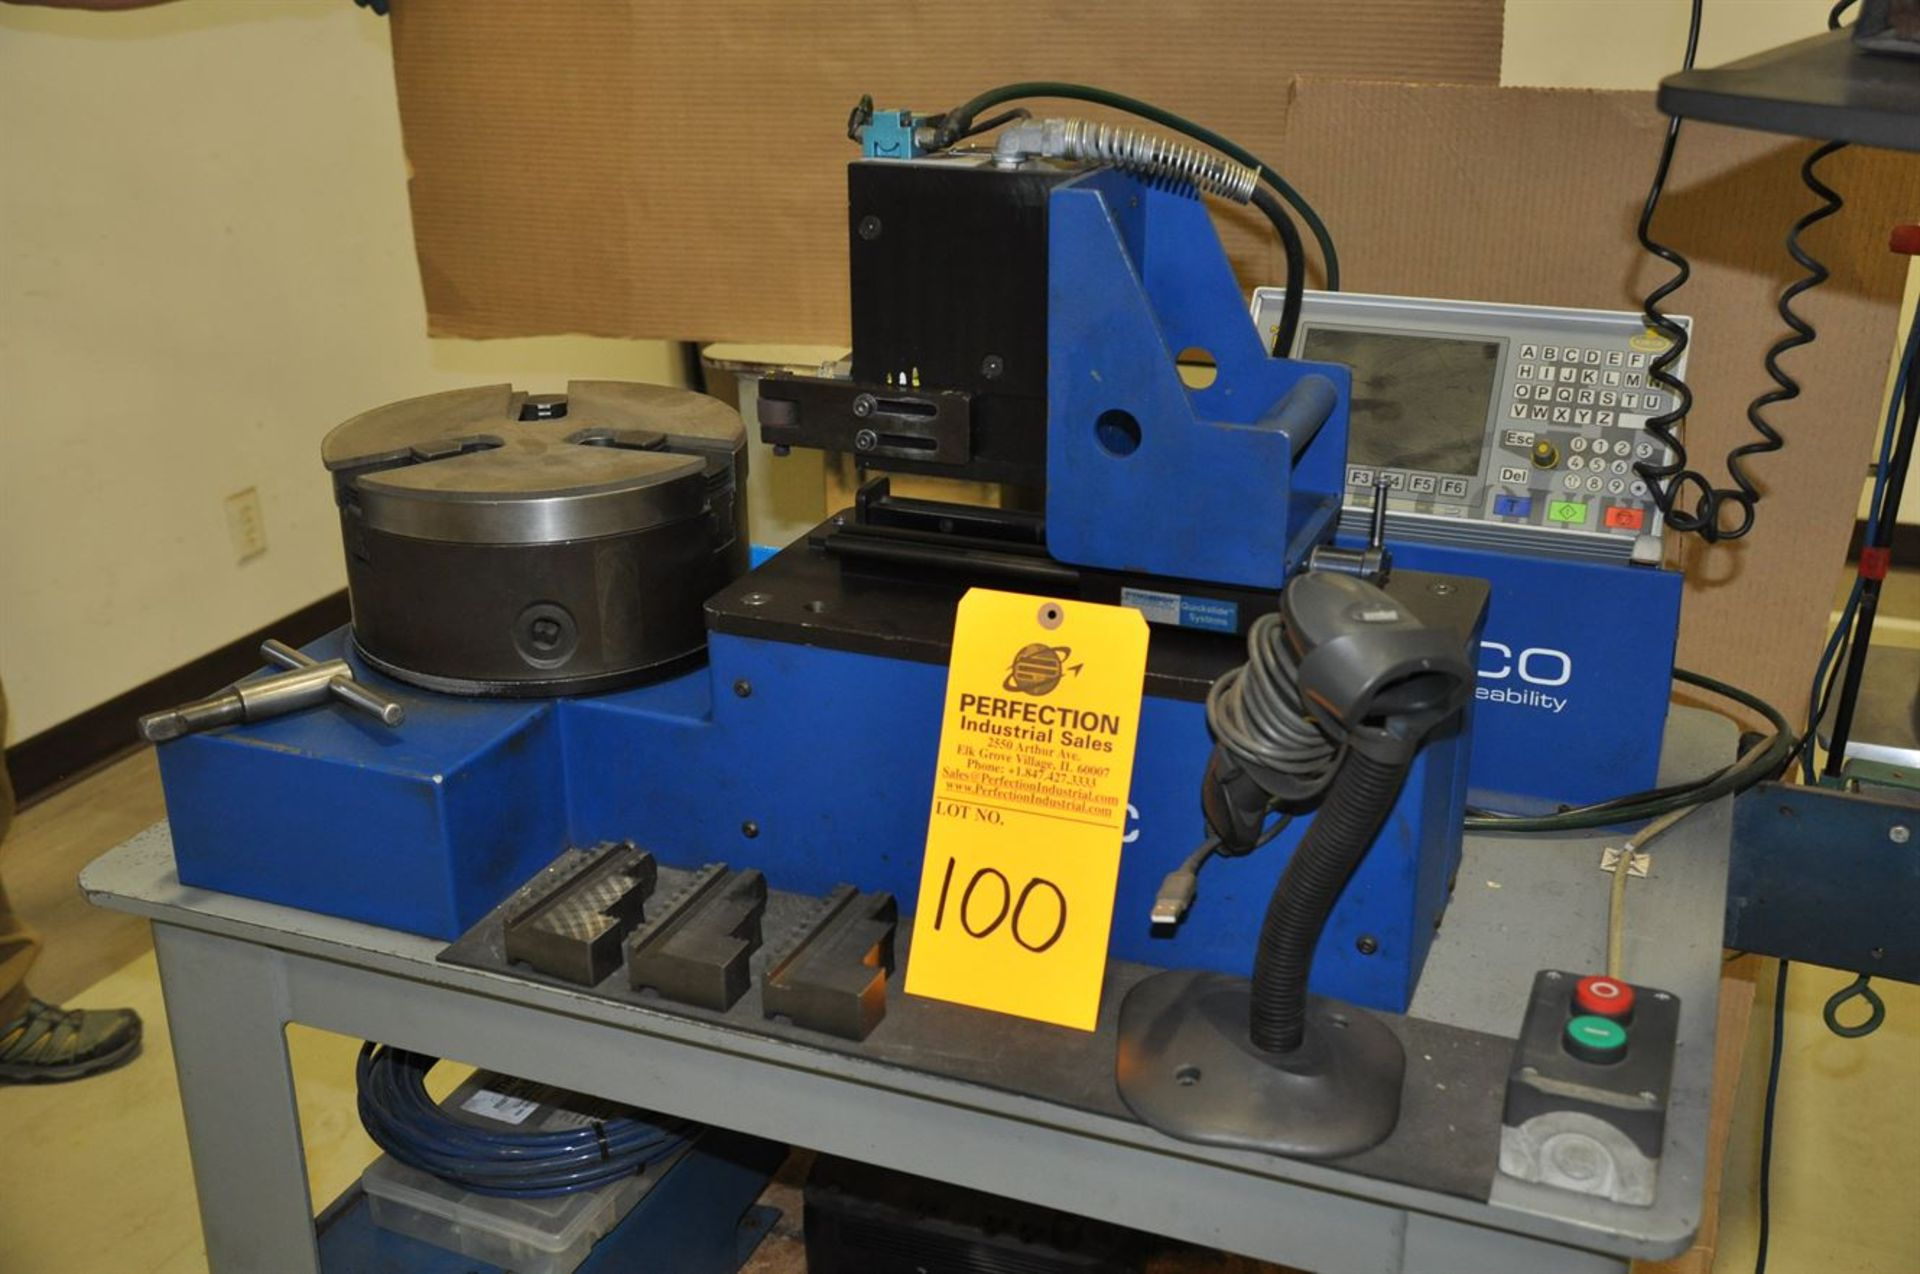 2011 MECCO MC2000 SuperFast Marking System, s/n 119982, w/ COUTH MC2000 T2 Controller, Bar Code - Image 2 of 3